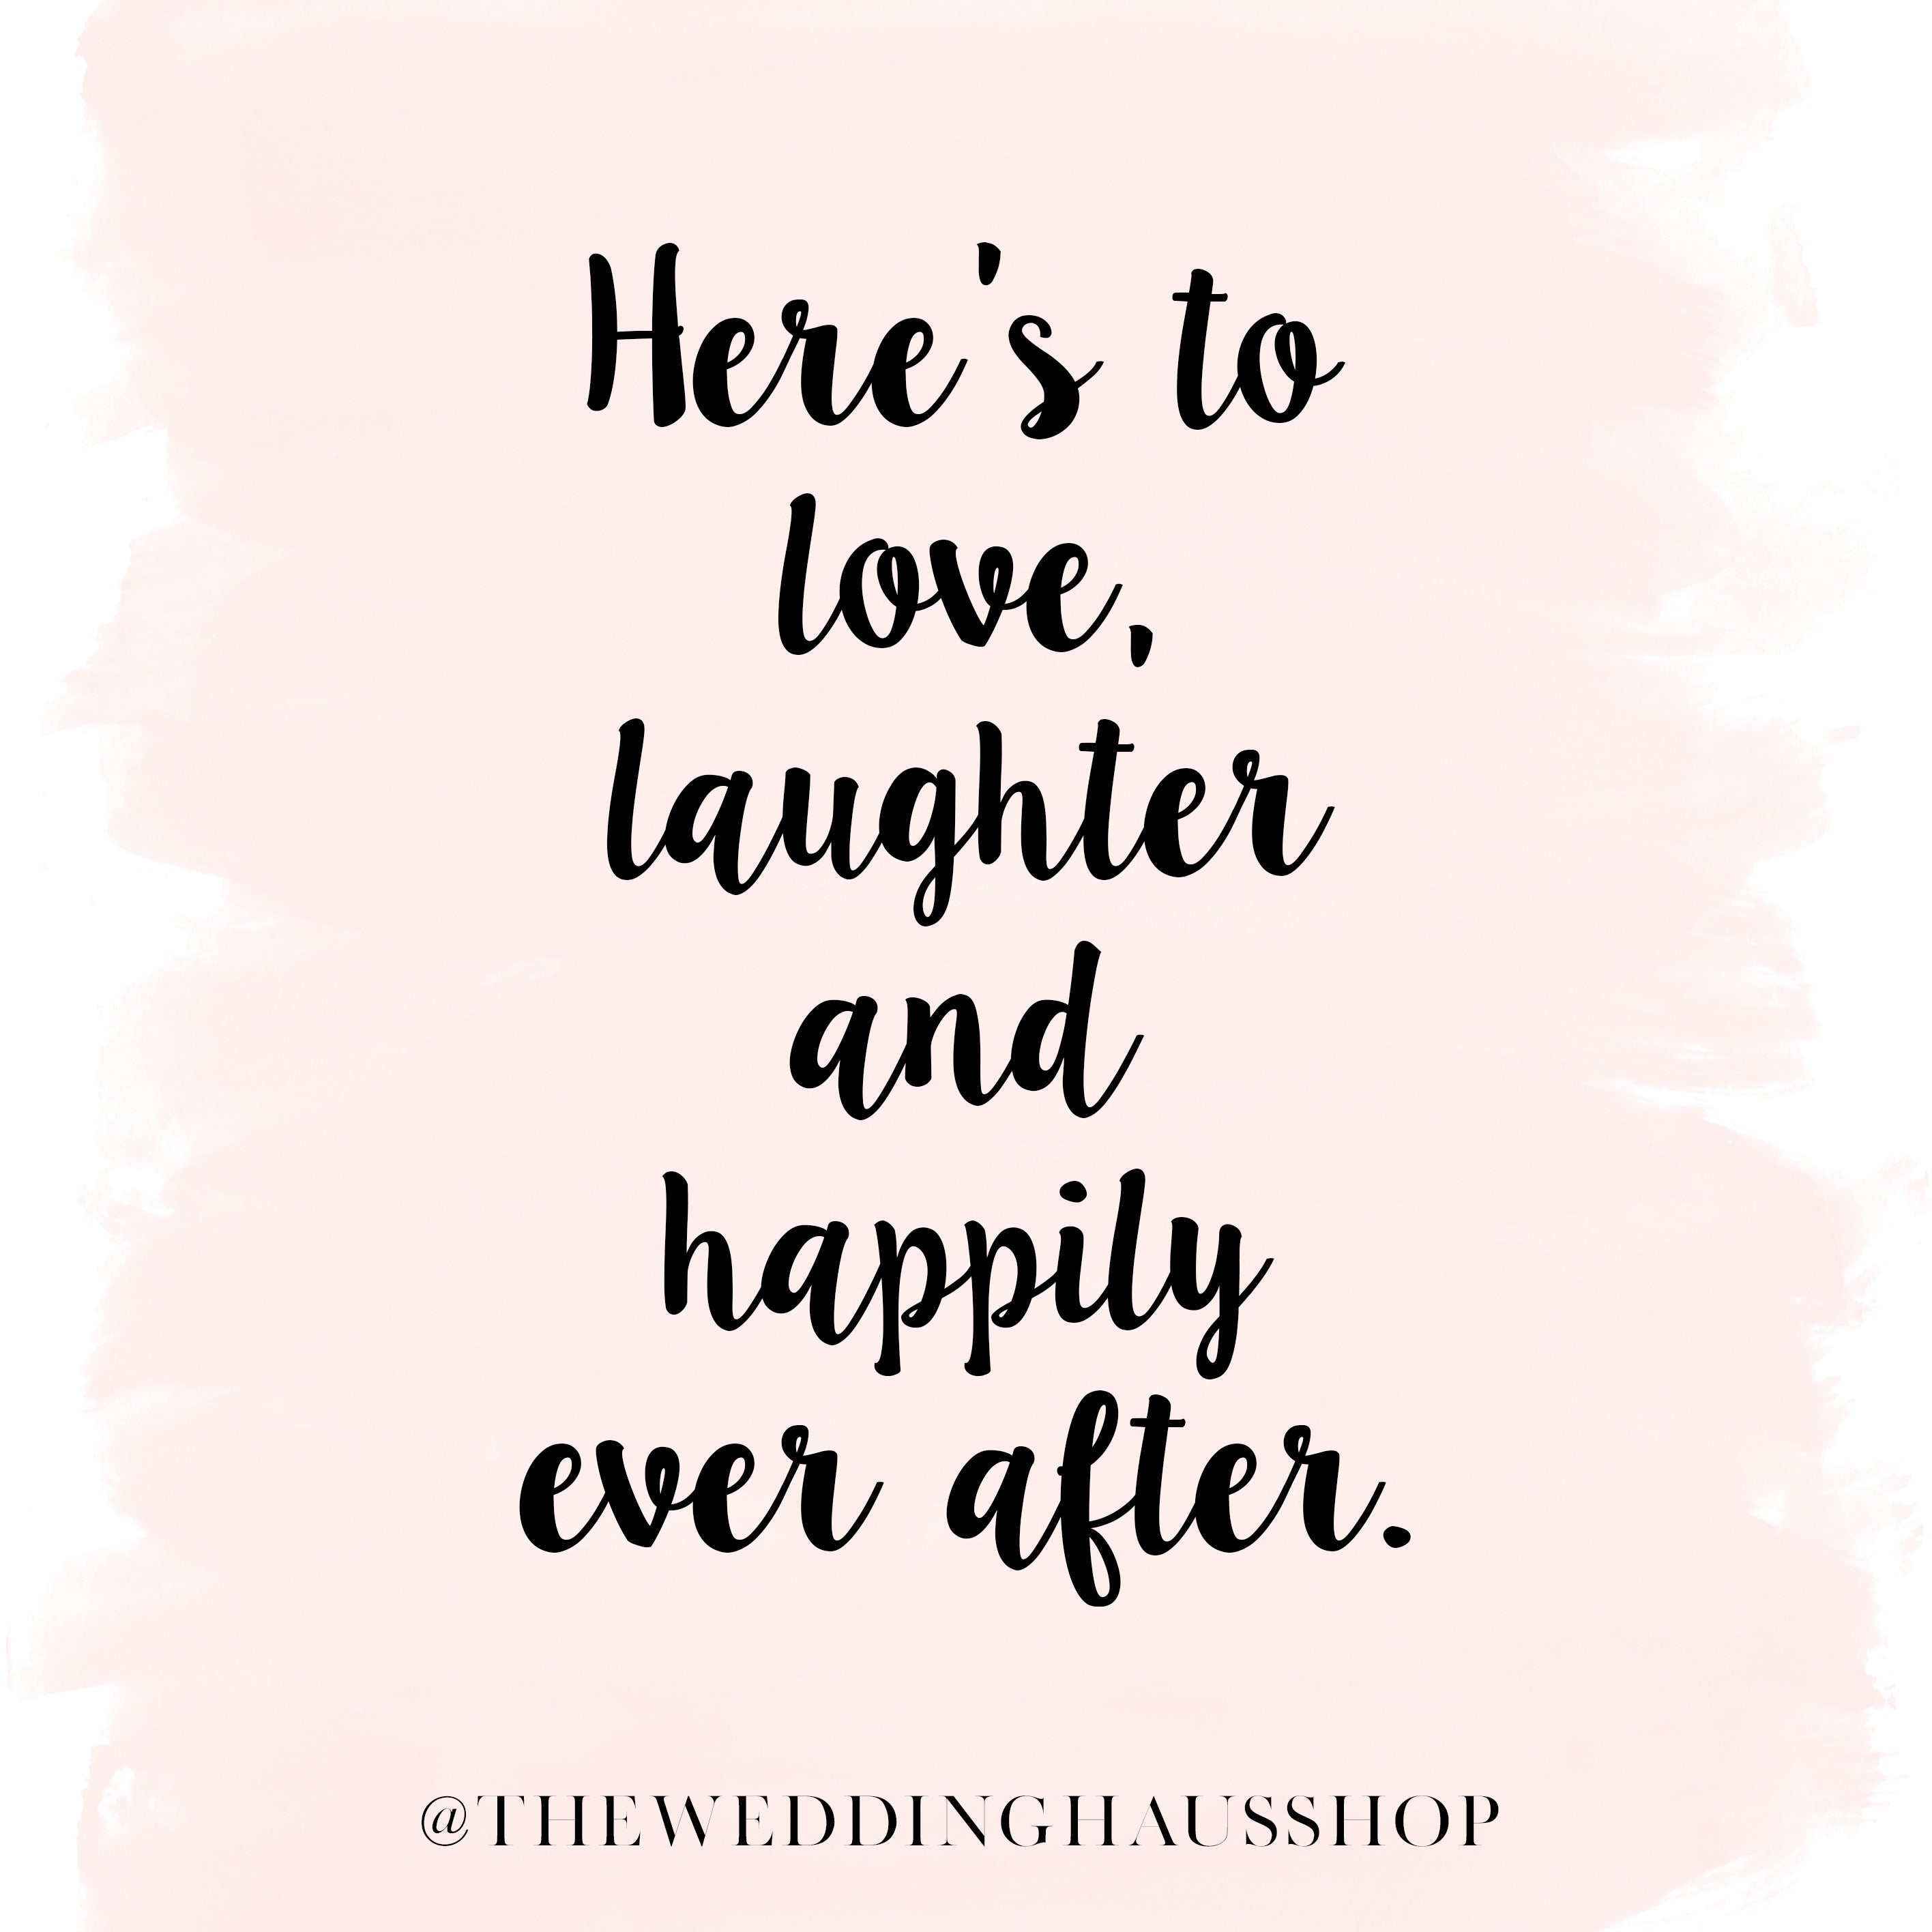 Here's to love, laughter and happily ever after from The Wedding Haus Premier Wedding Shop